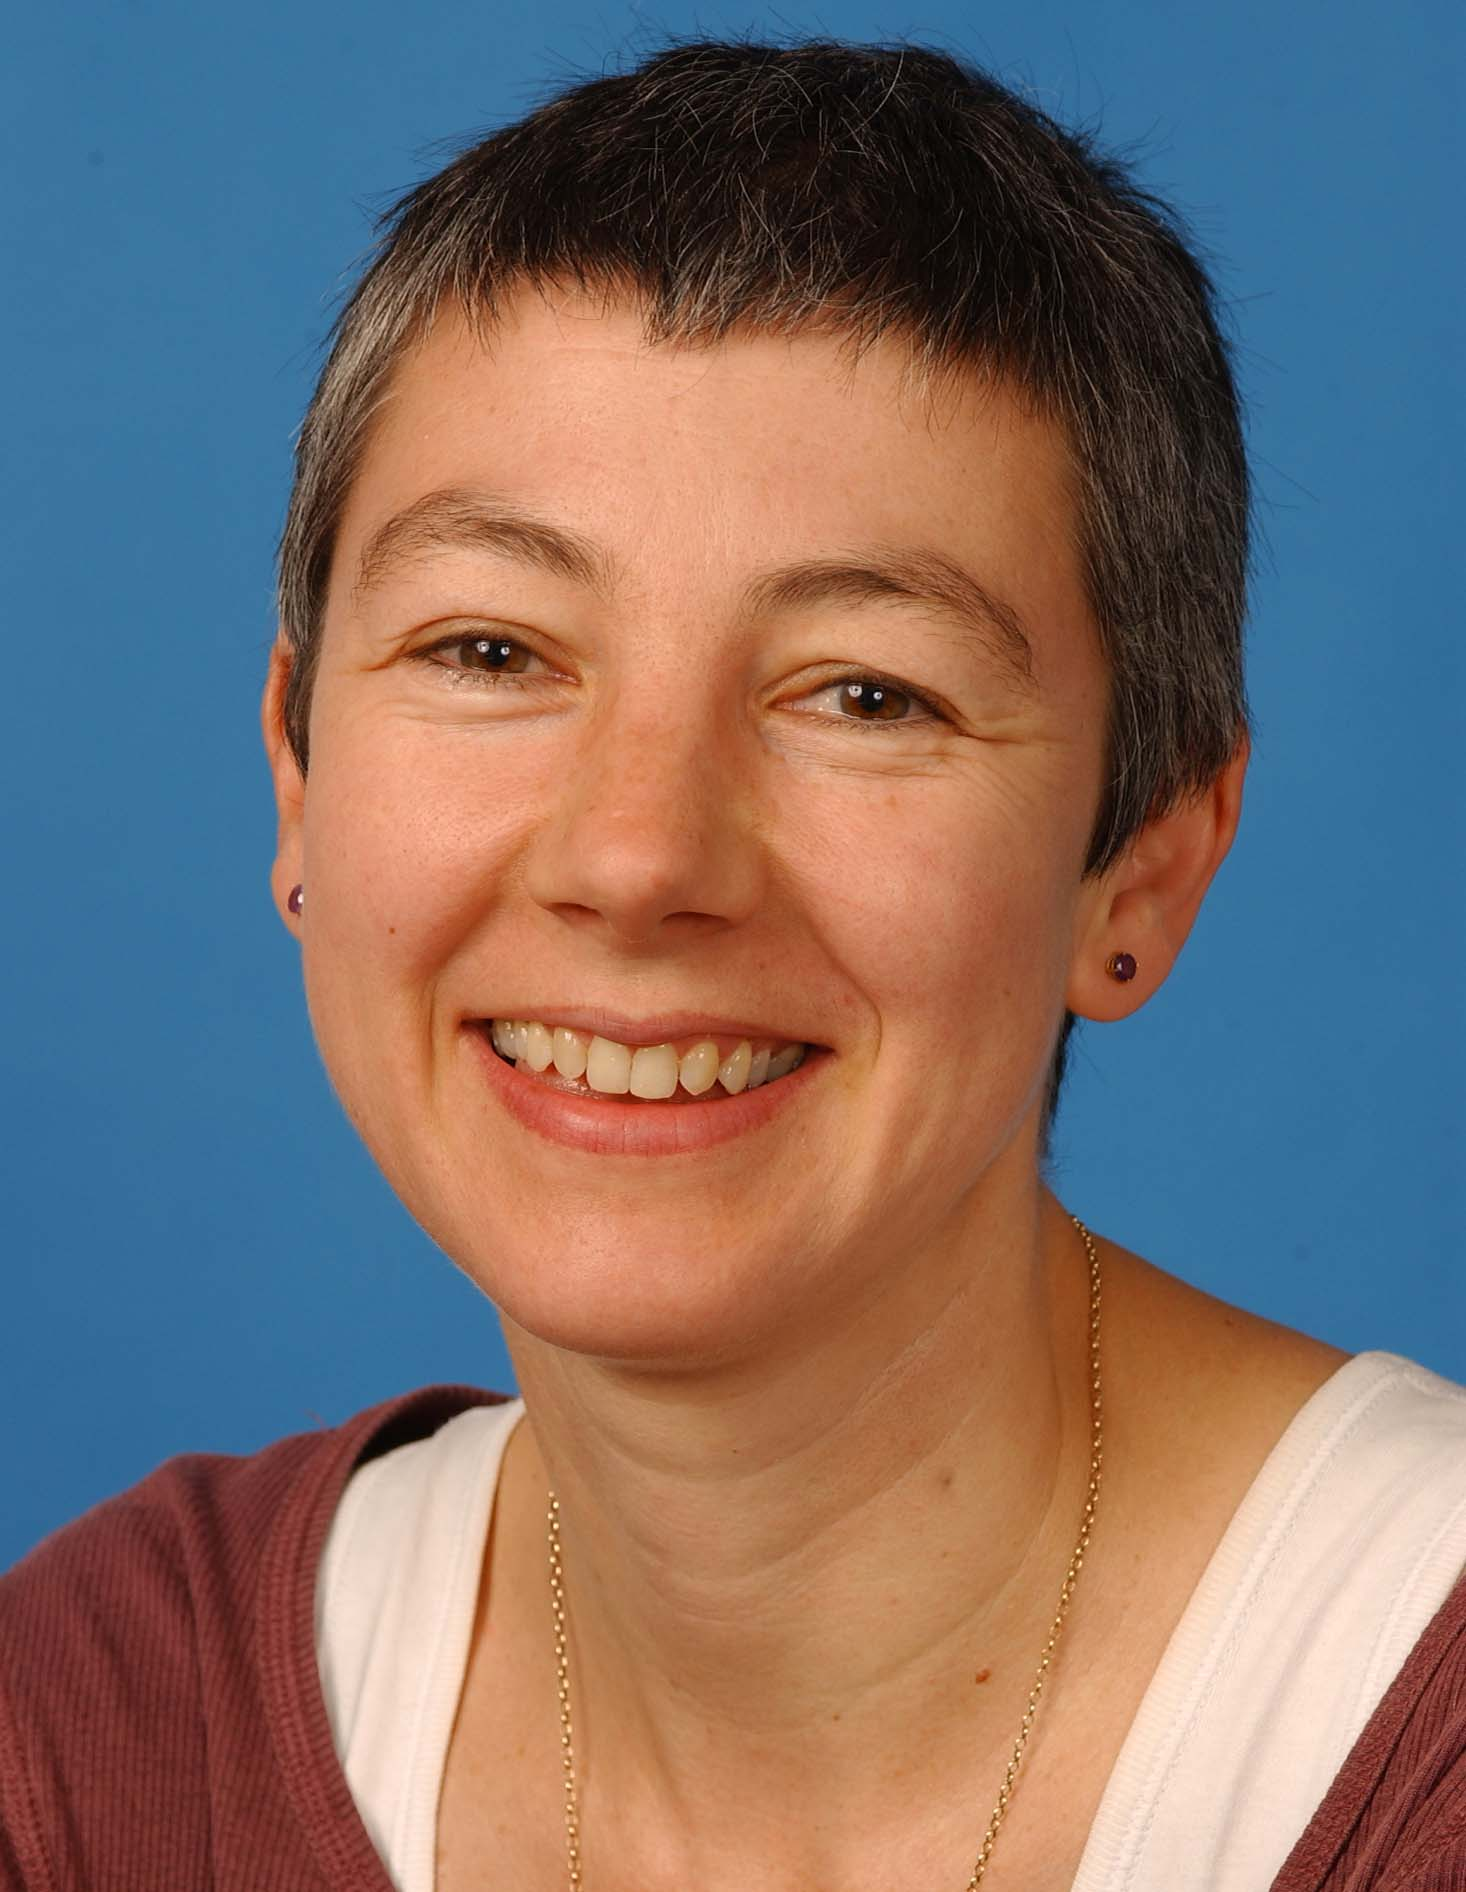 Prof. Alex Rowe - Professor Alex Rowe works at the Institute of Immunology and Infection Research – University of Edinburgh. Her research interest is the study of host-parasite interactions in life threatening malaria. The focus of her research lies in understanding how infected red blood cells bind to host cells and cause disease during Plasmodium falciparum infections.For more information about Prof. Rowe's research click here.